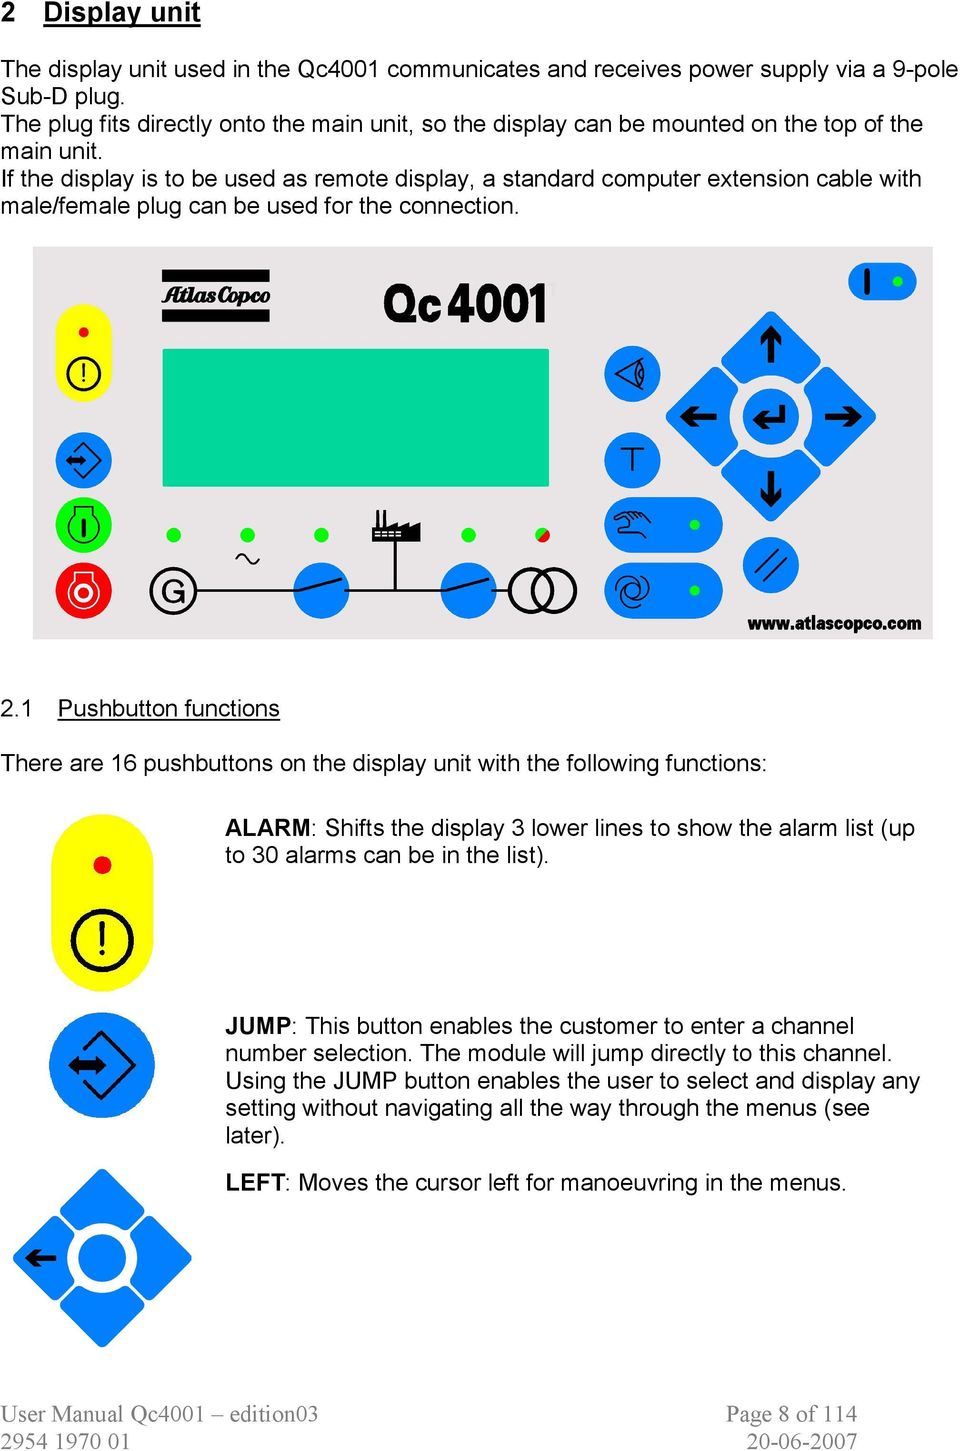 atlas copco generators qix qas qac user manual for the qc4001 if the display is to be used as remote display a standard computer extension cable